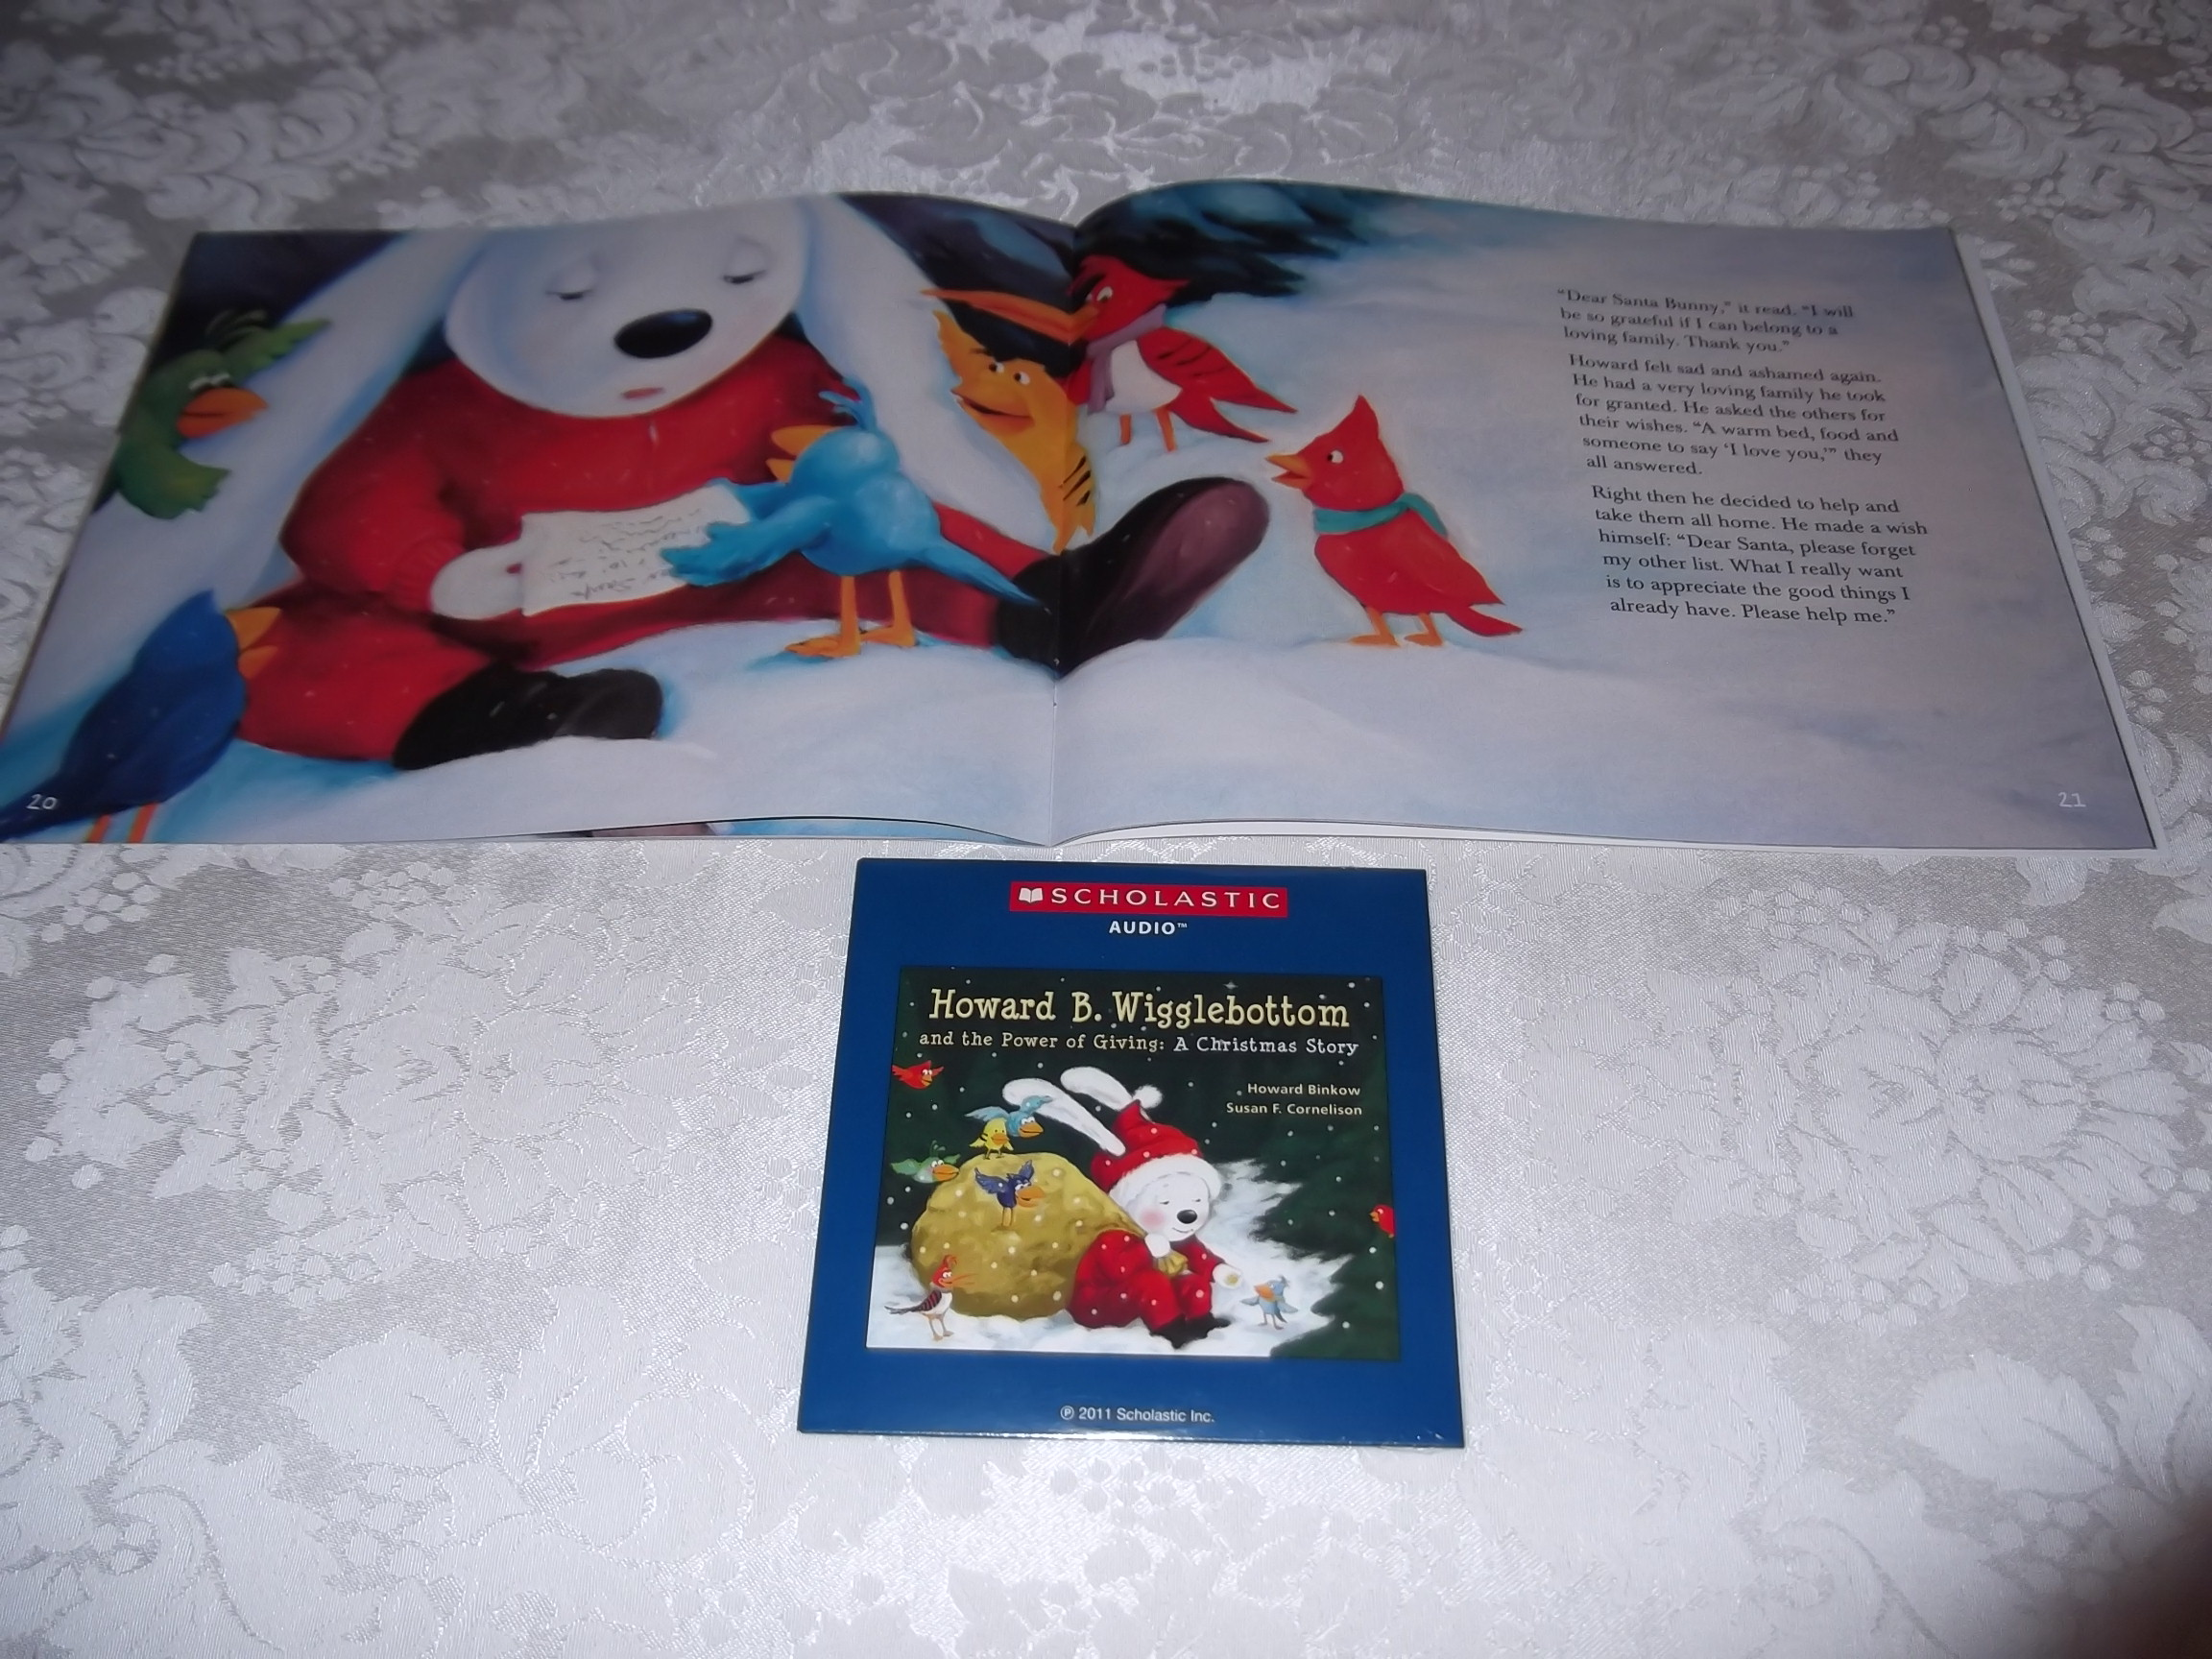 Image 5 of Howard B. Wigglebottom and the Power of Giving: A Christmas Story Audio CD & SC